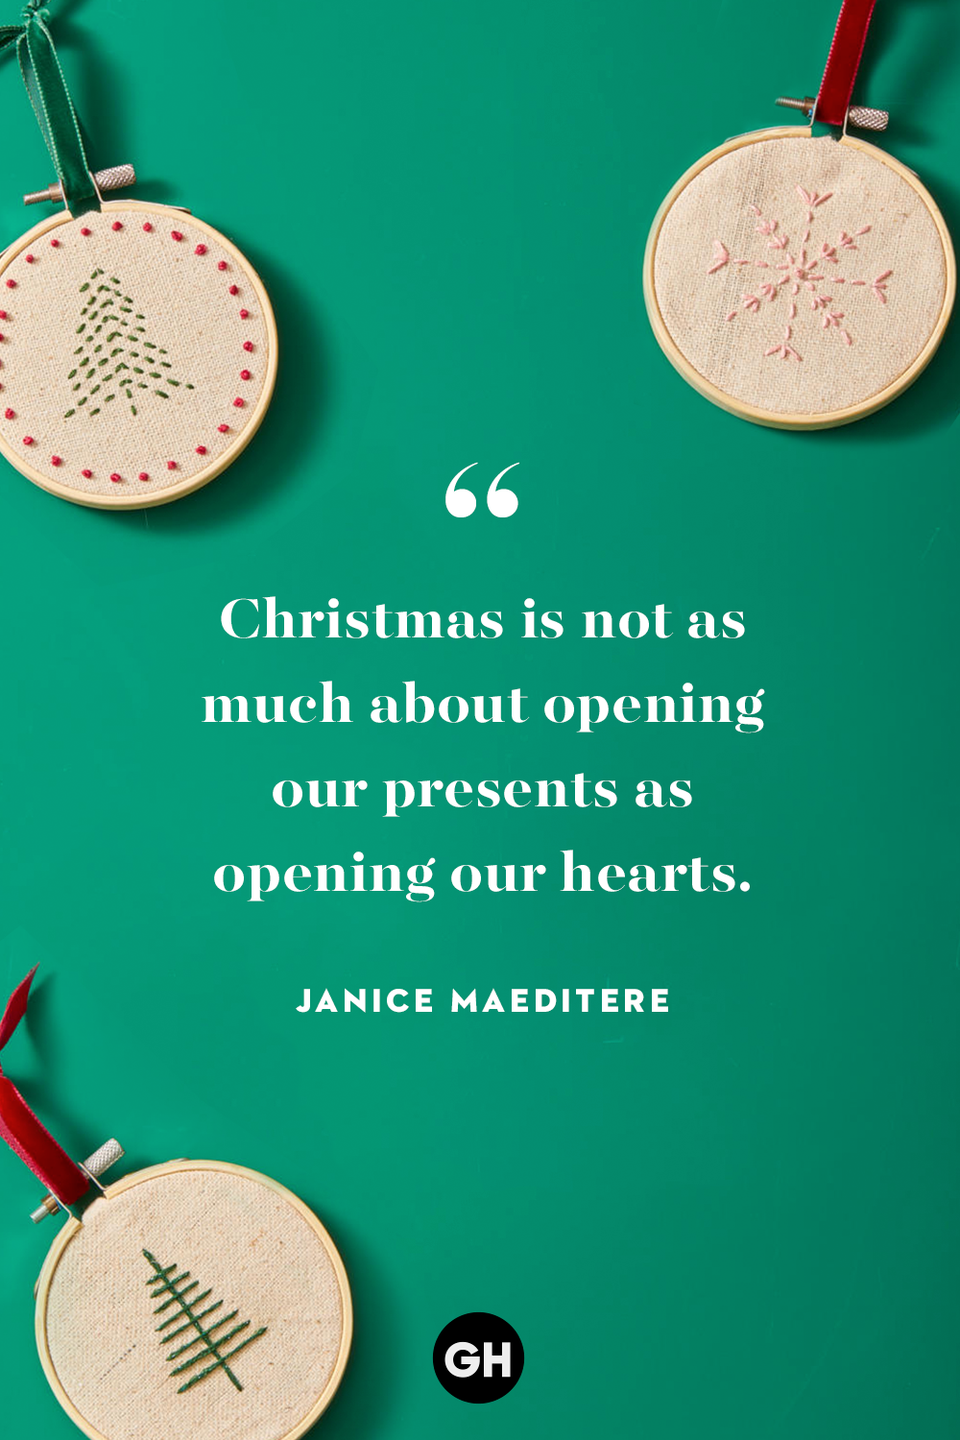 <p>Christmas is not as much about opening our presents as opening our hearts.</p>